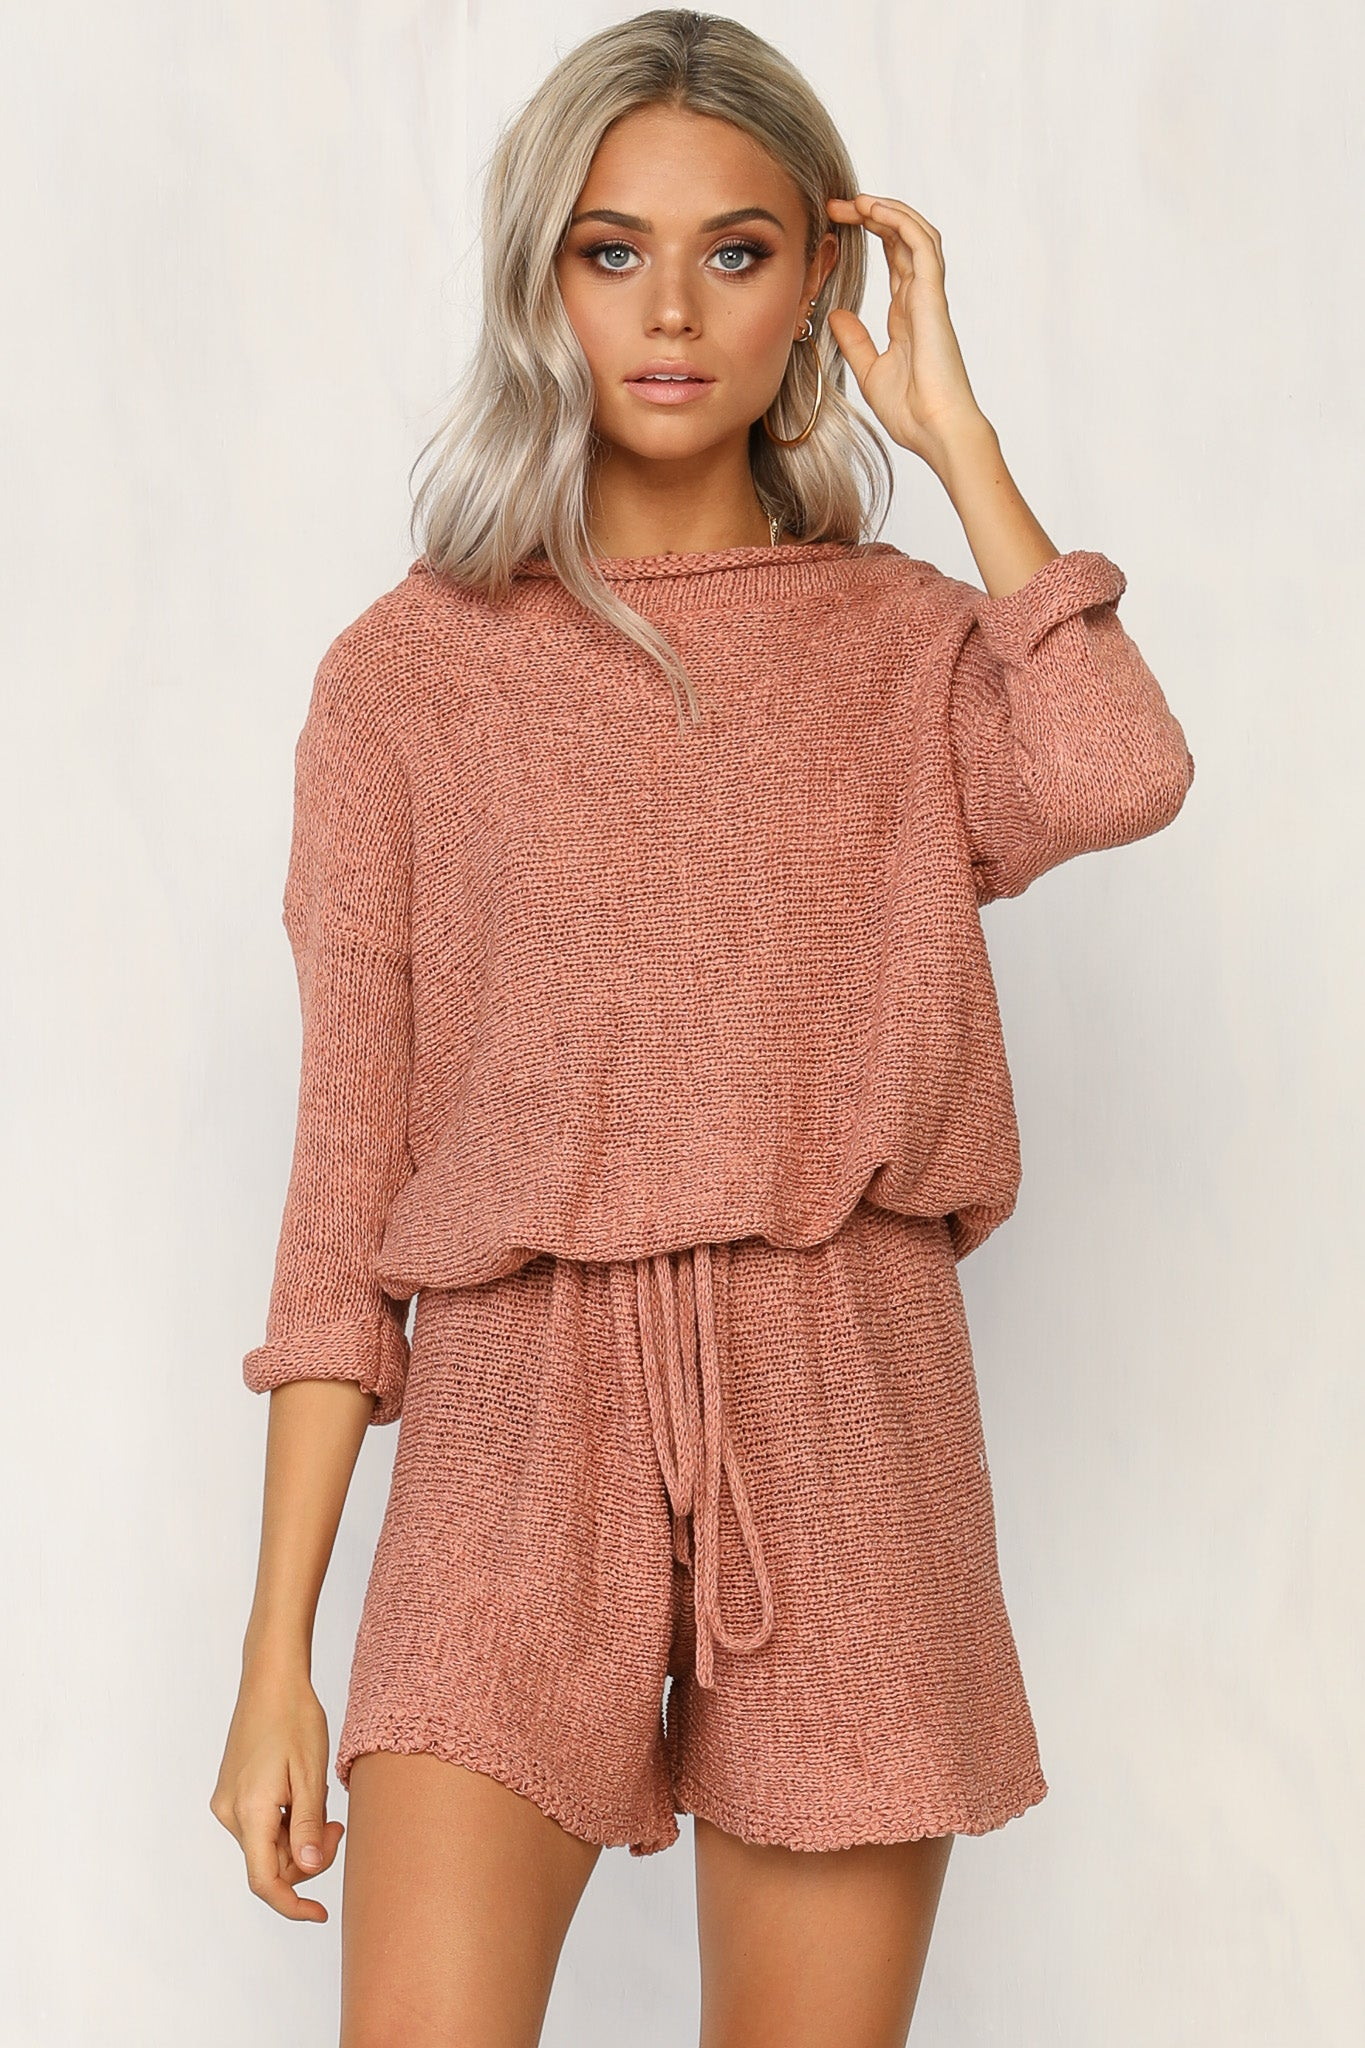 b3e58c50a4 Just Sayin Playsuit – RunwayScout